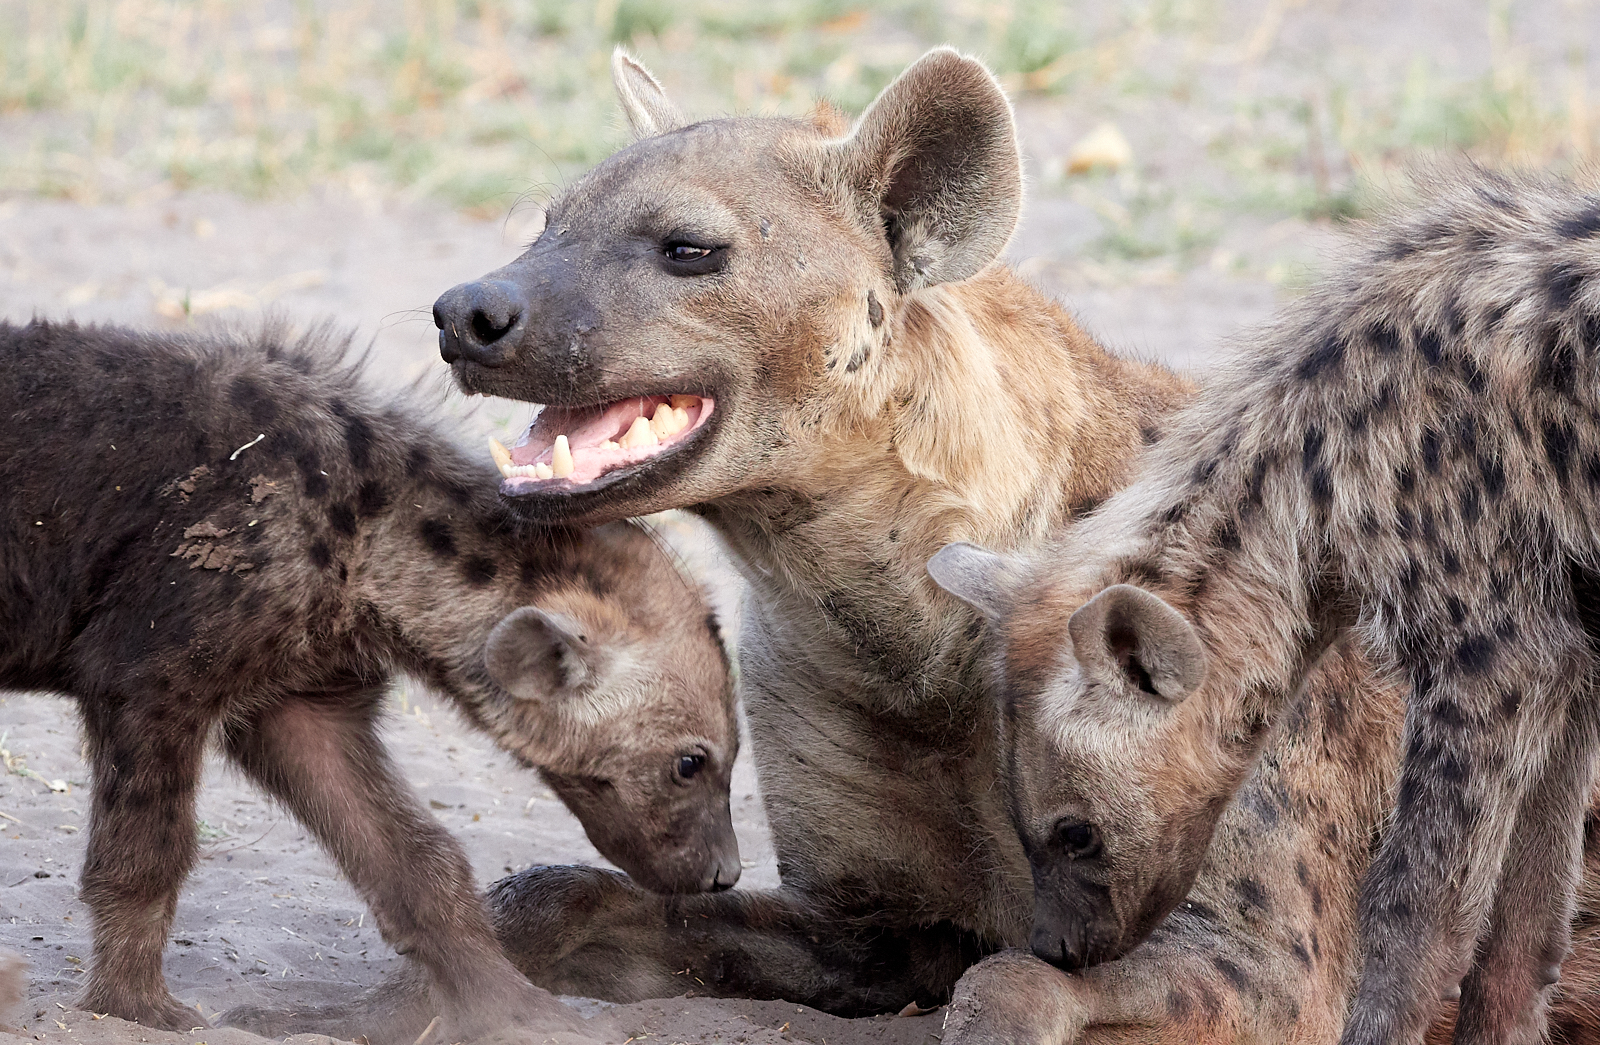 Mother and Hyena cubs 2 1600x1200 sRGB.jpg